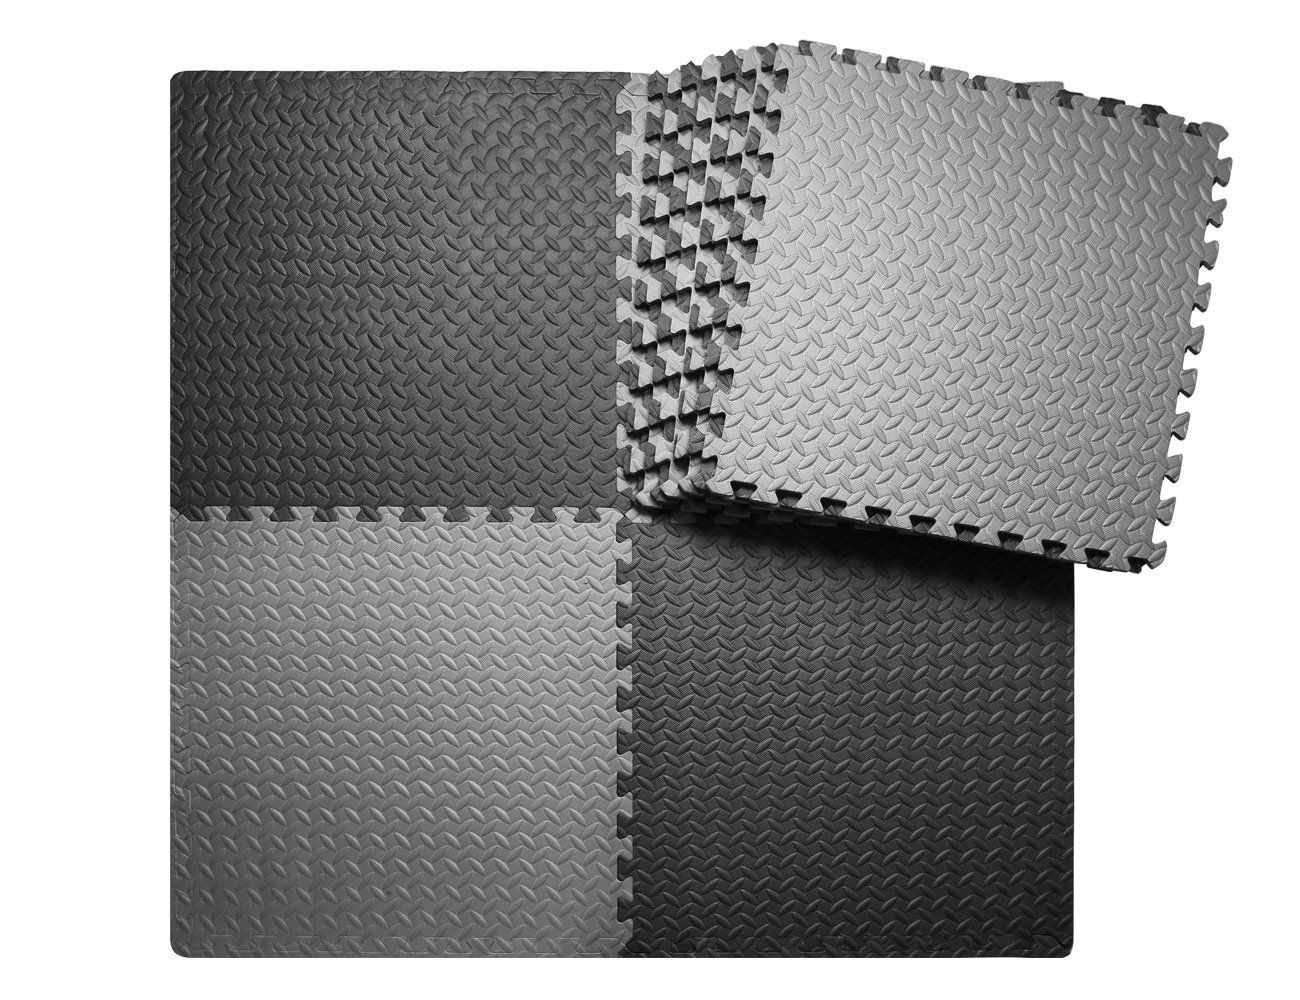 innhom 12 Tiles, 46 SQ. FT Gym Mat Puzzle Exercise Mats Gym Flooring Mat Interlocking Foam Mats with EVA Foam Floor Tiles for Gym Equipment Workouts, Black and Gray